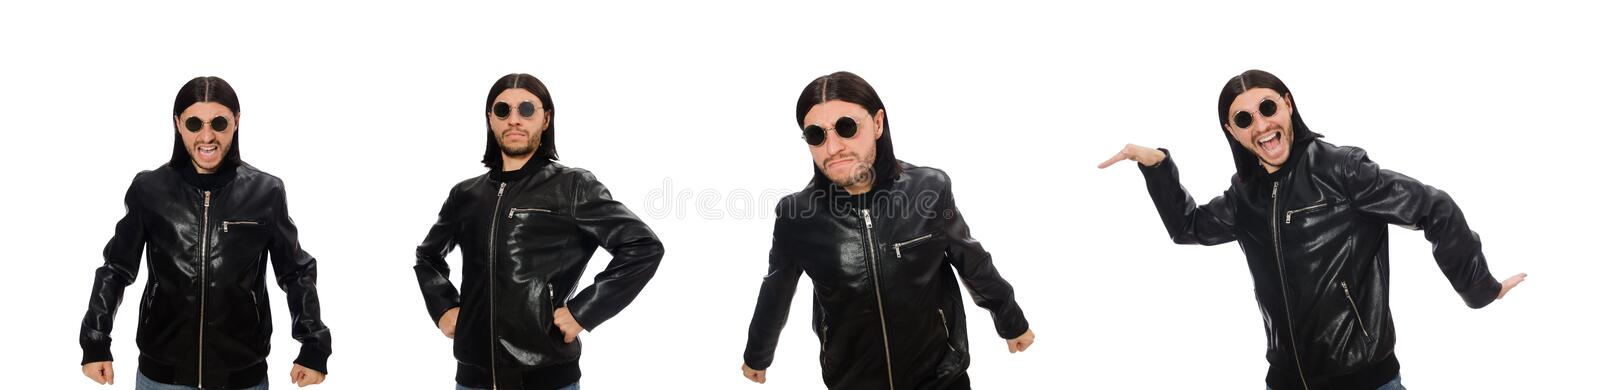 Aggressive angry man isolated on white royalty free stock images